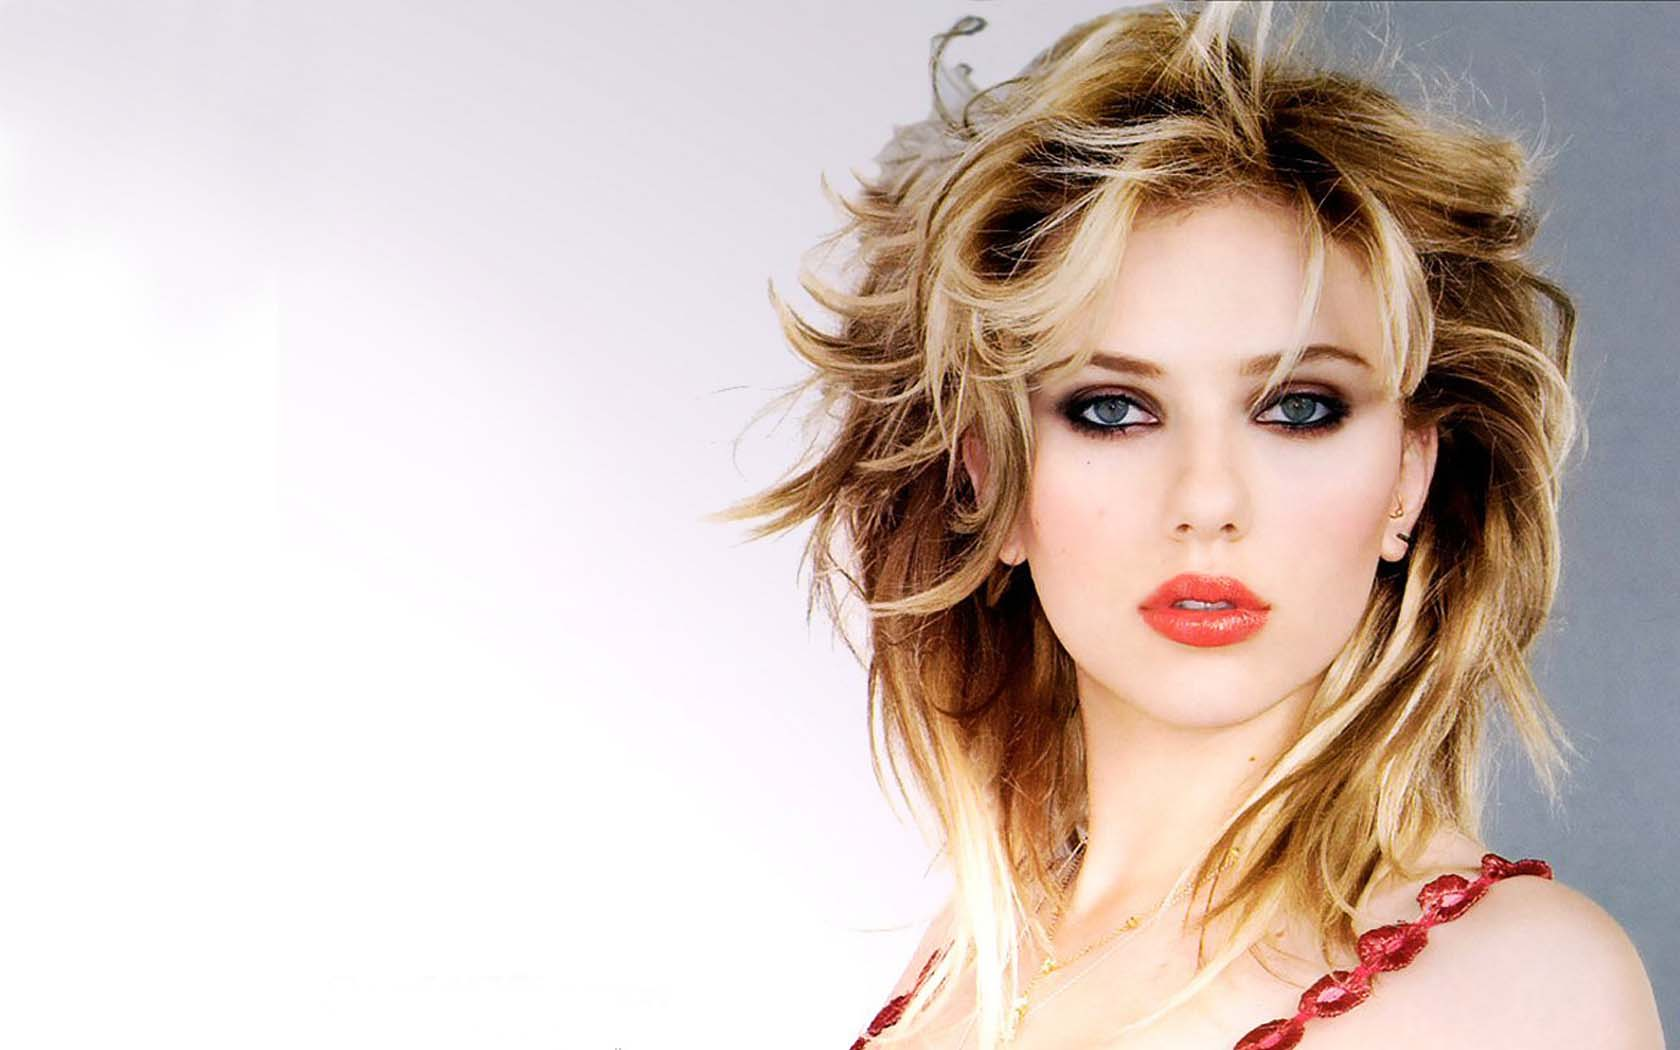 Scarlett Johansson Wallpaper Hd 6